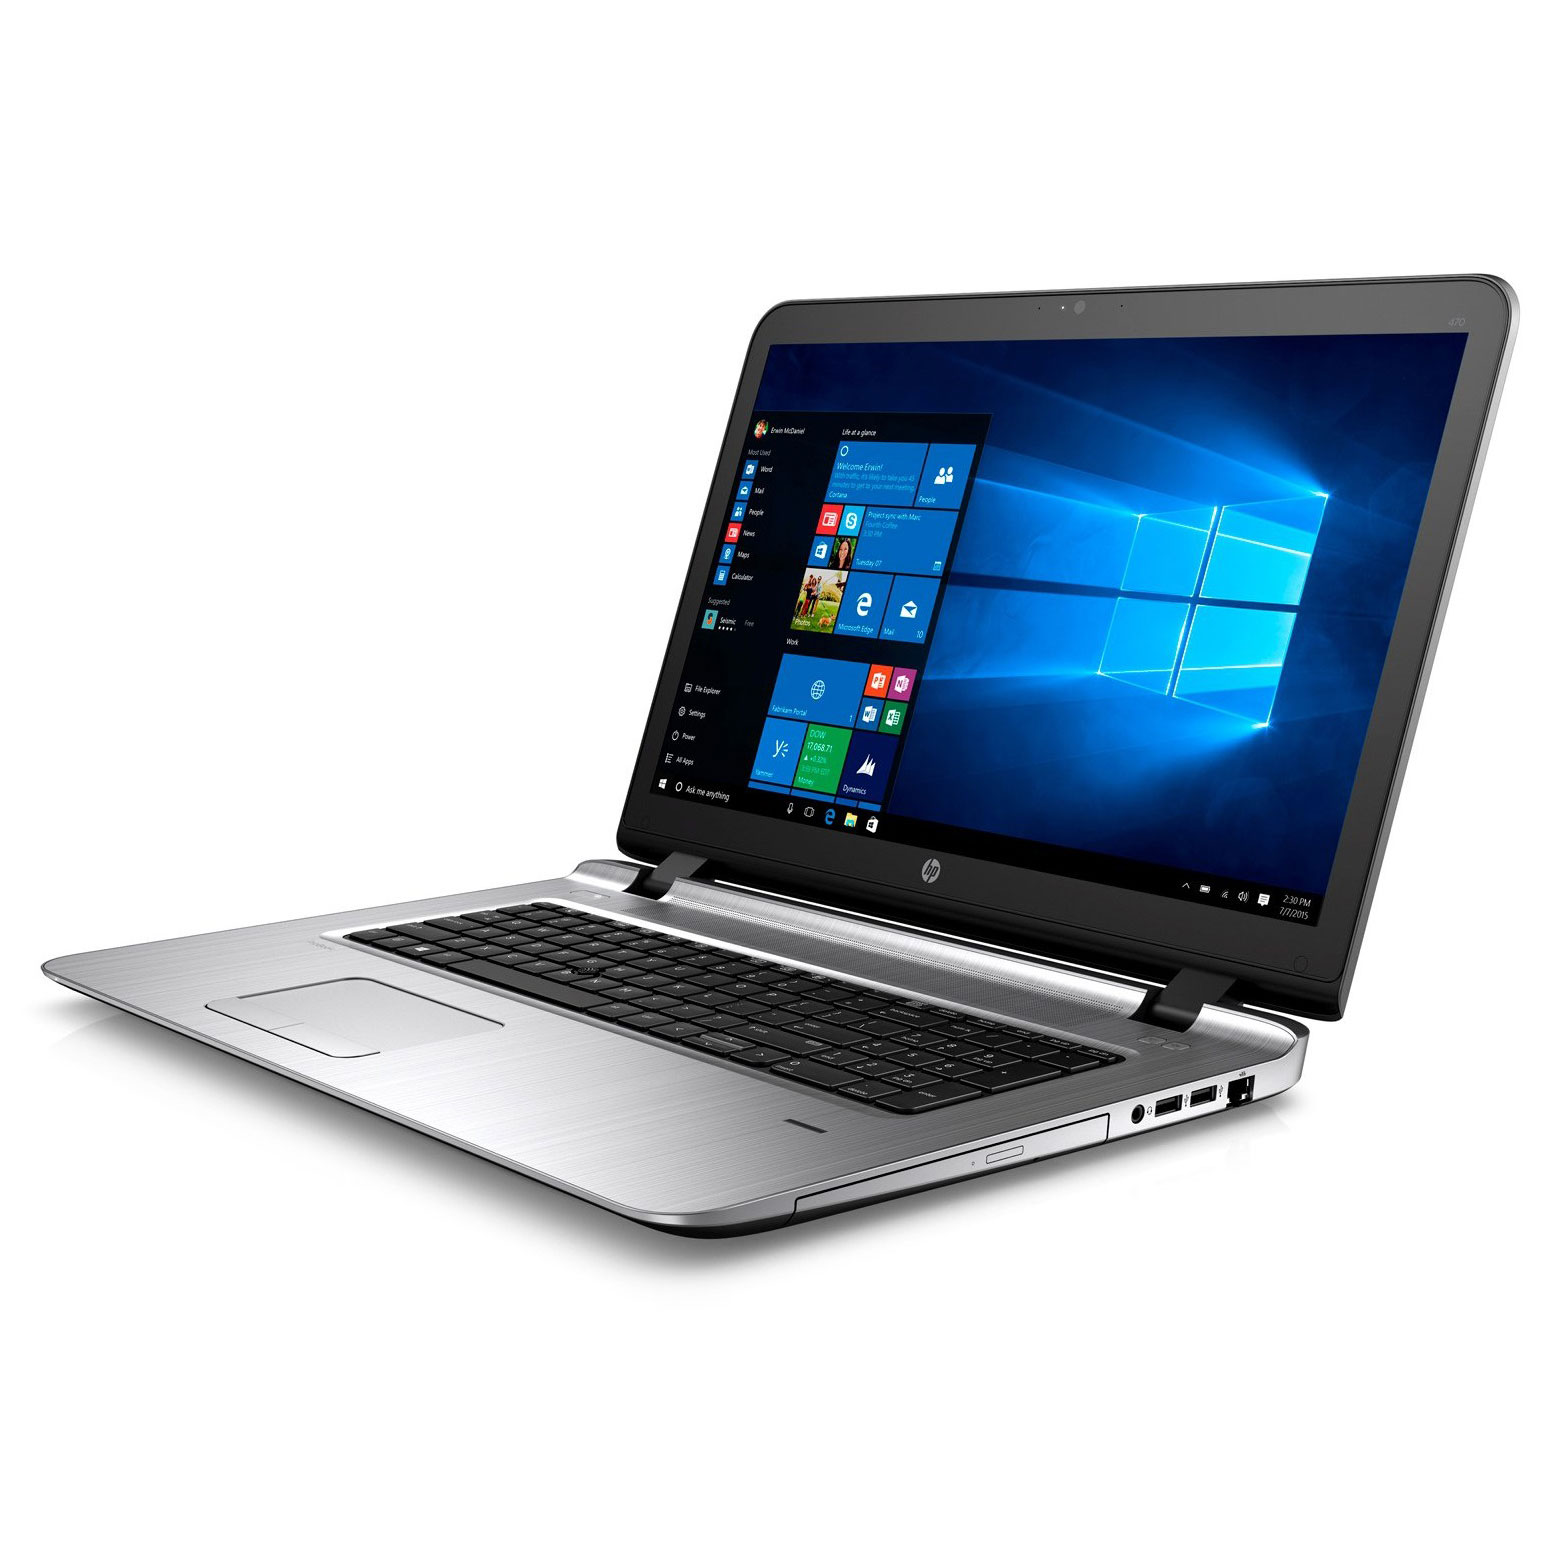 Ordinateur portable HP Probook 470 G3 17.3 pouces full HD, Windows 10, Intel Core i7 6500U, informatique Reunion 974, Futur Réunion informatique